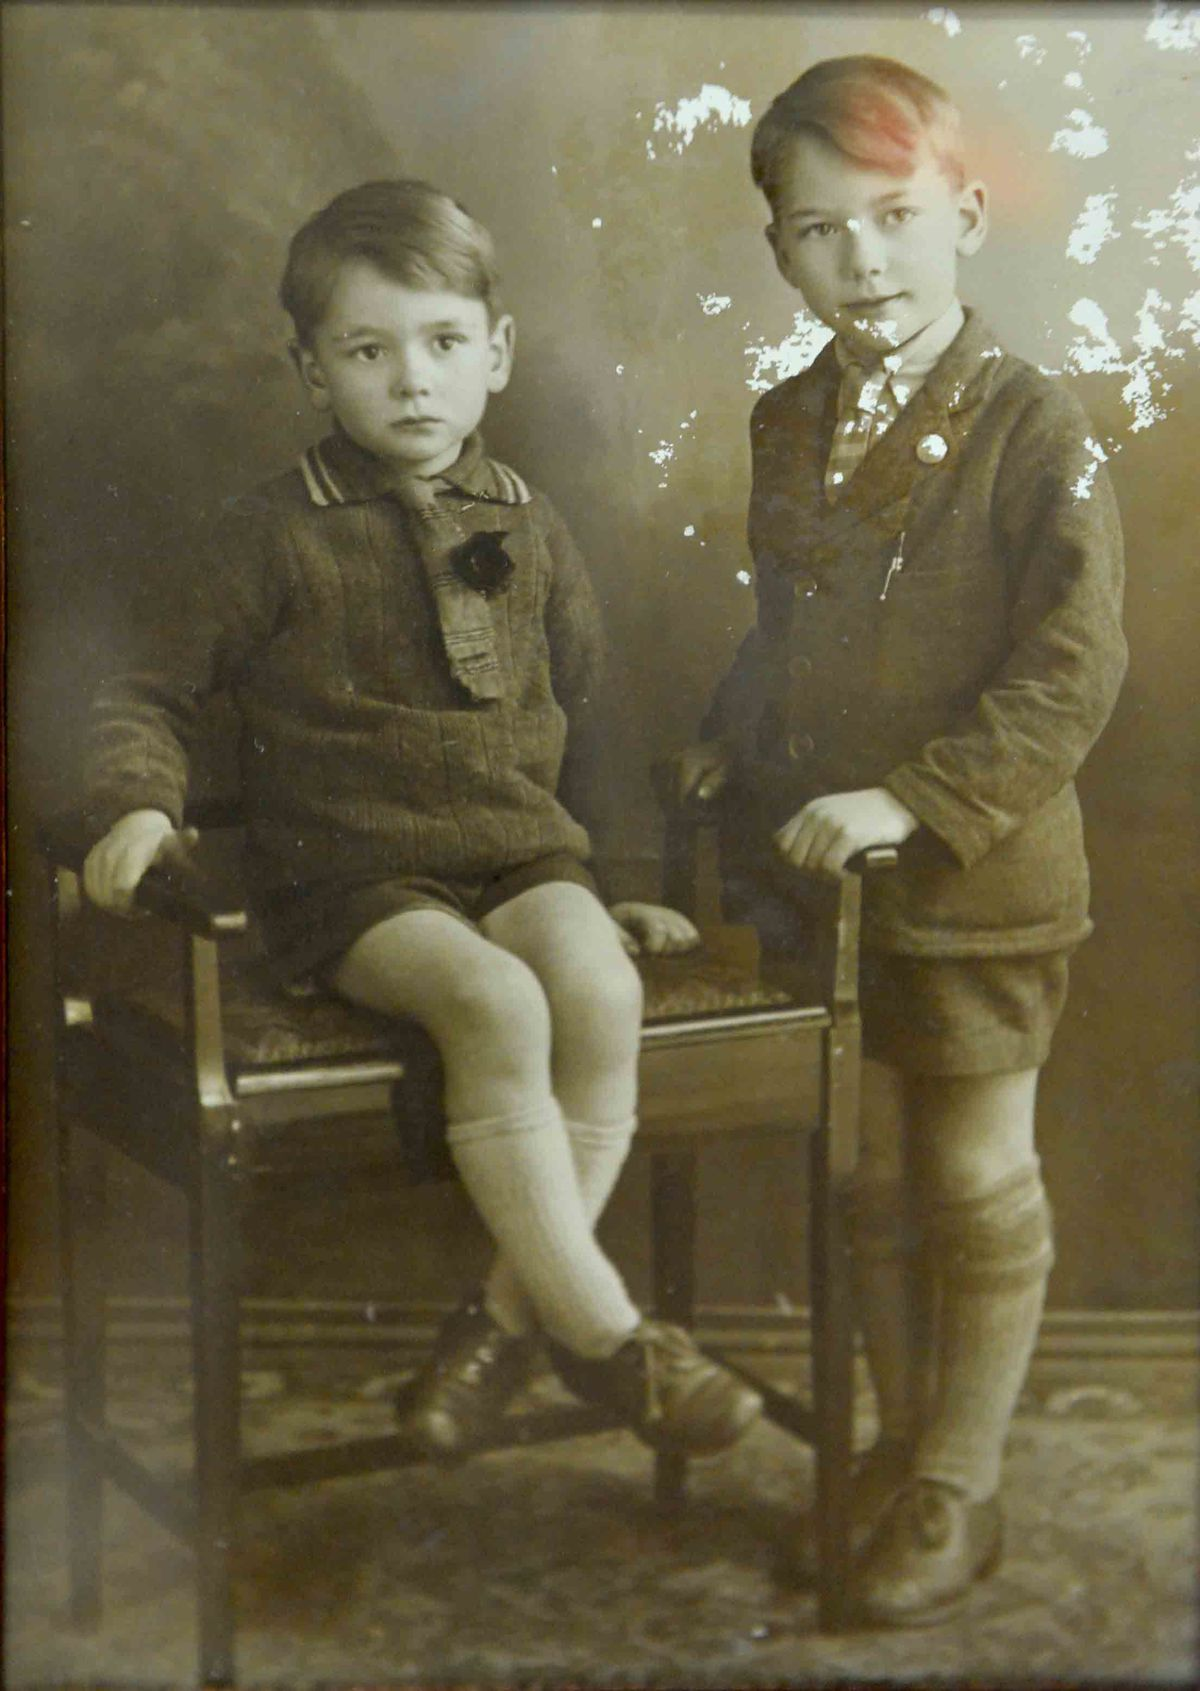 Ron and Roy Tomlin as children